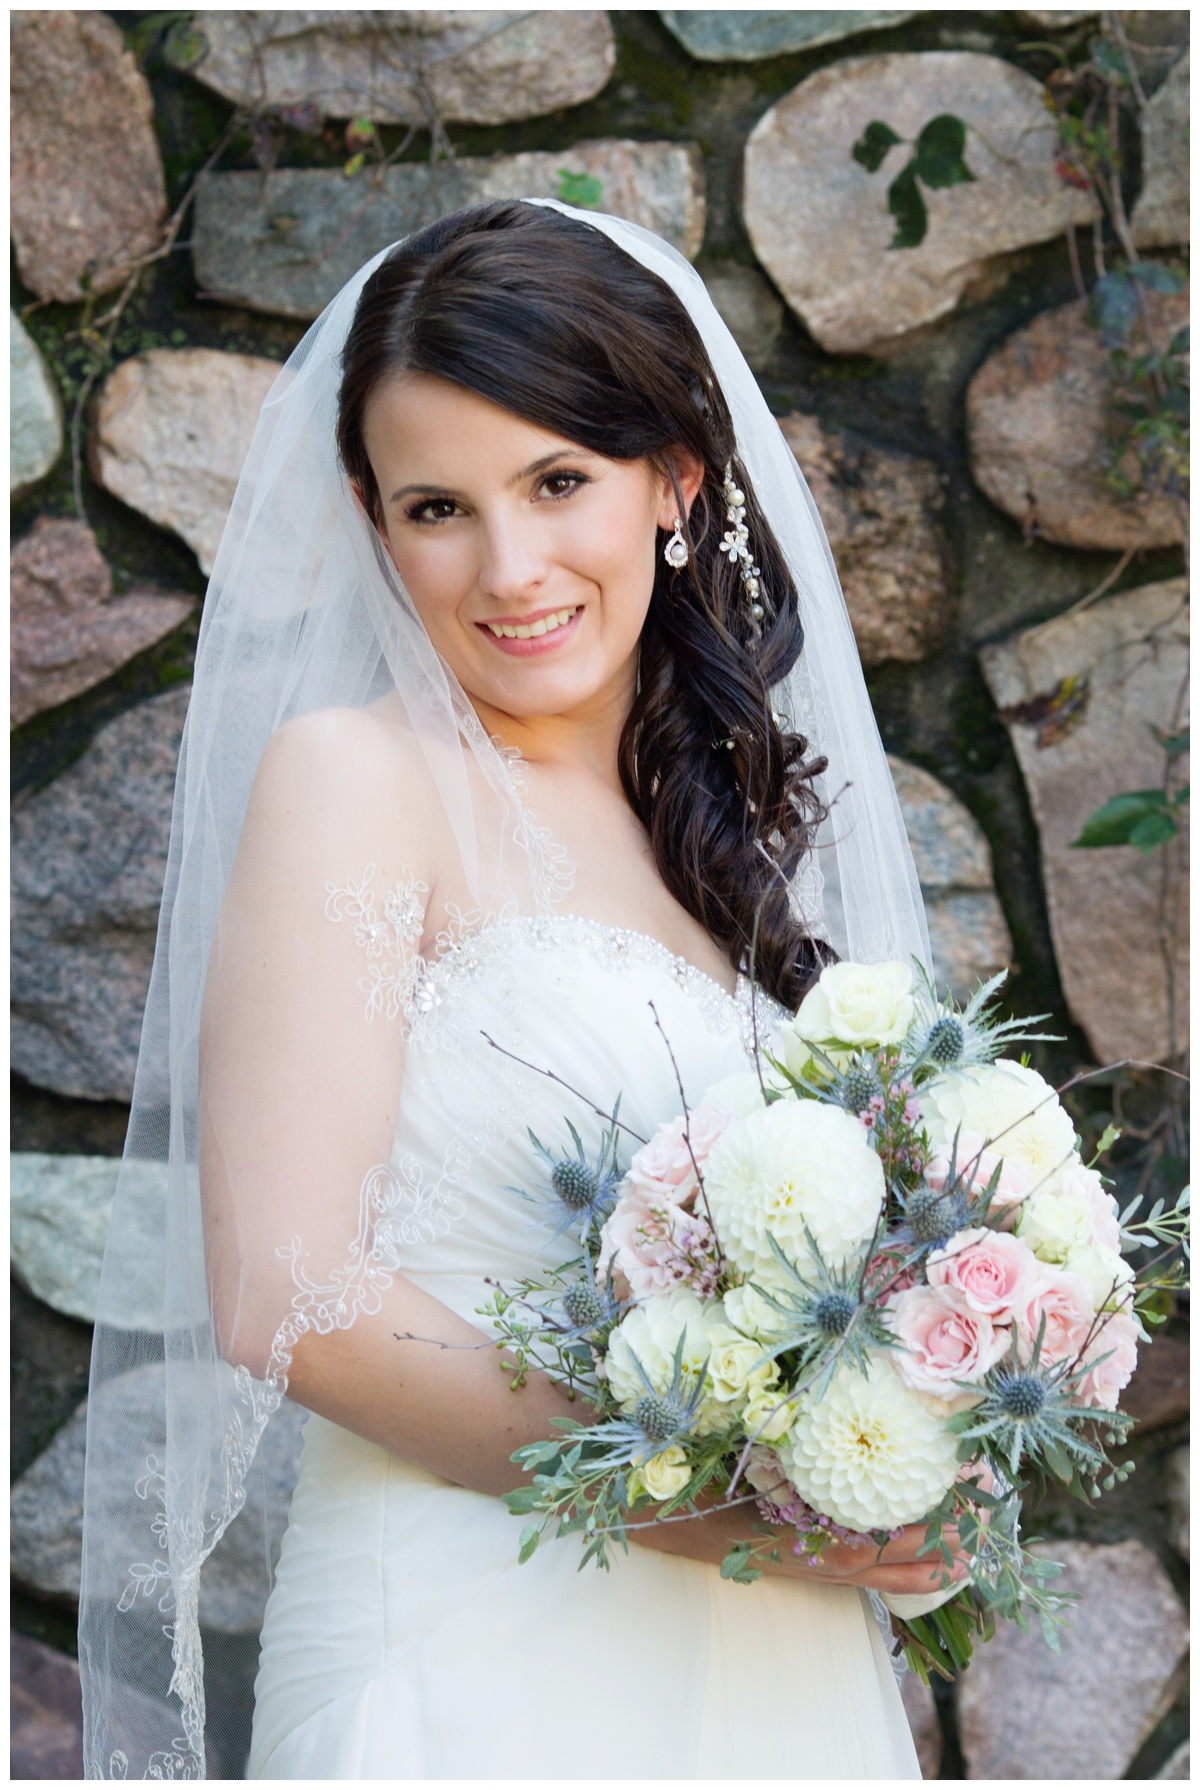 Bride | Michigan Wedding Photography | Alyssia Booth's Candid & Studio